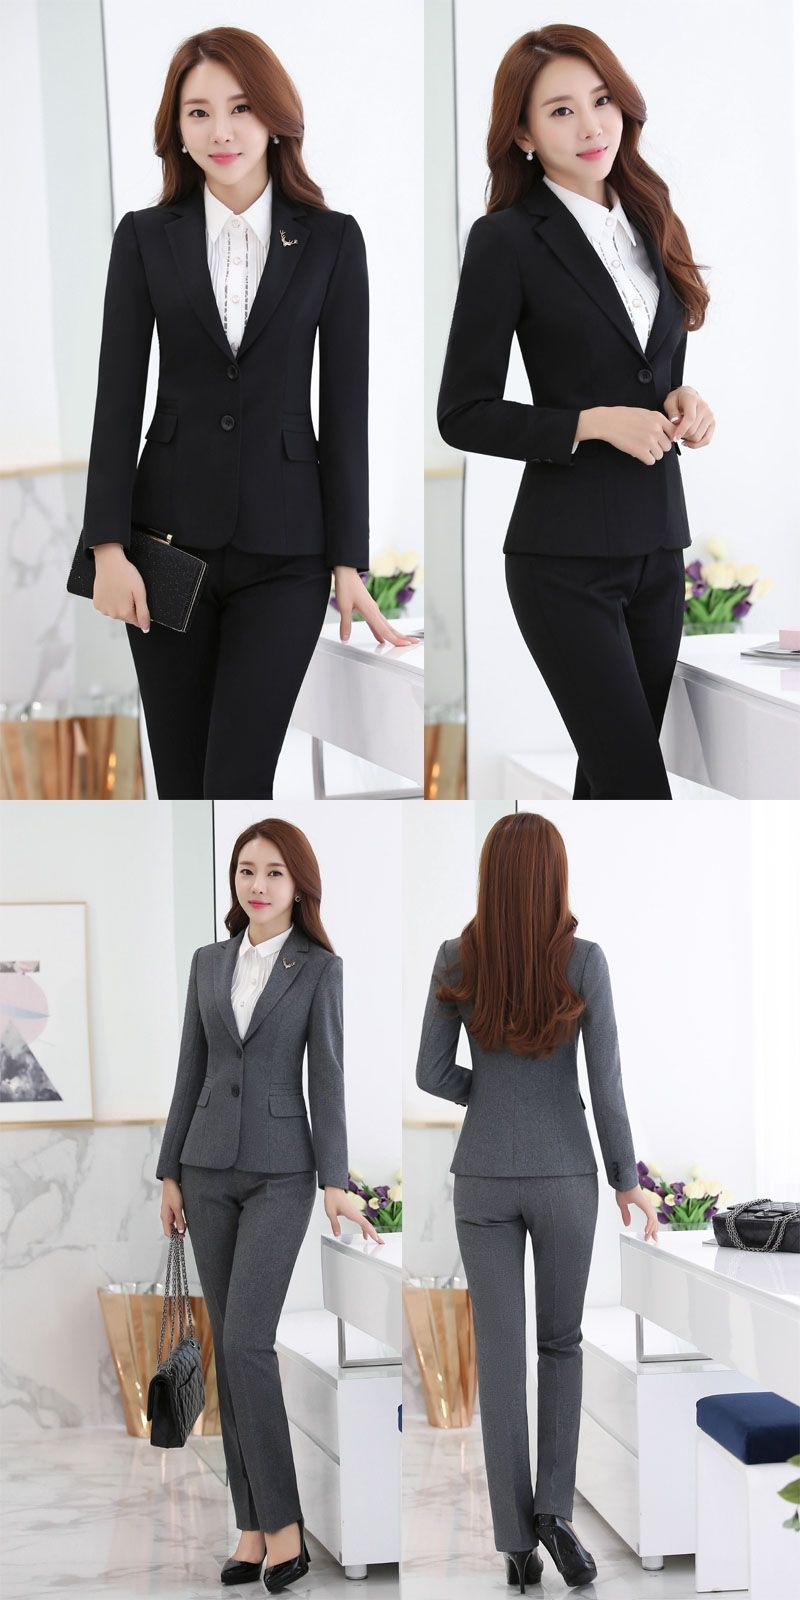 aaa19f99d New 2015 Feminino Professional Business Work Wear Suits Blazer And ...